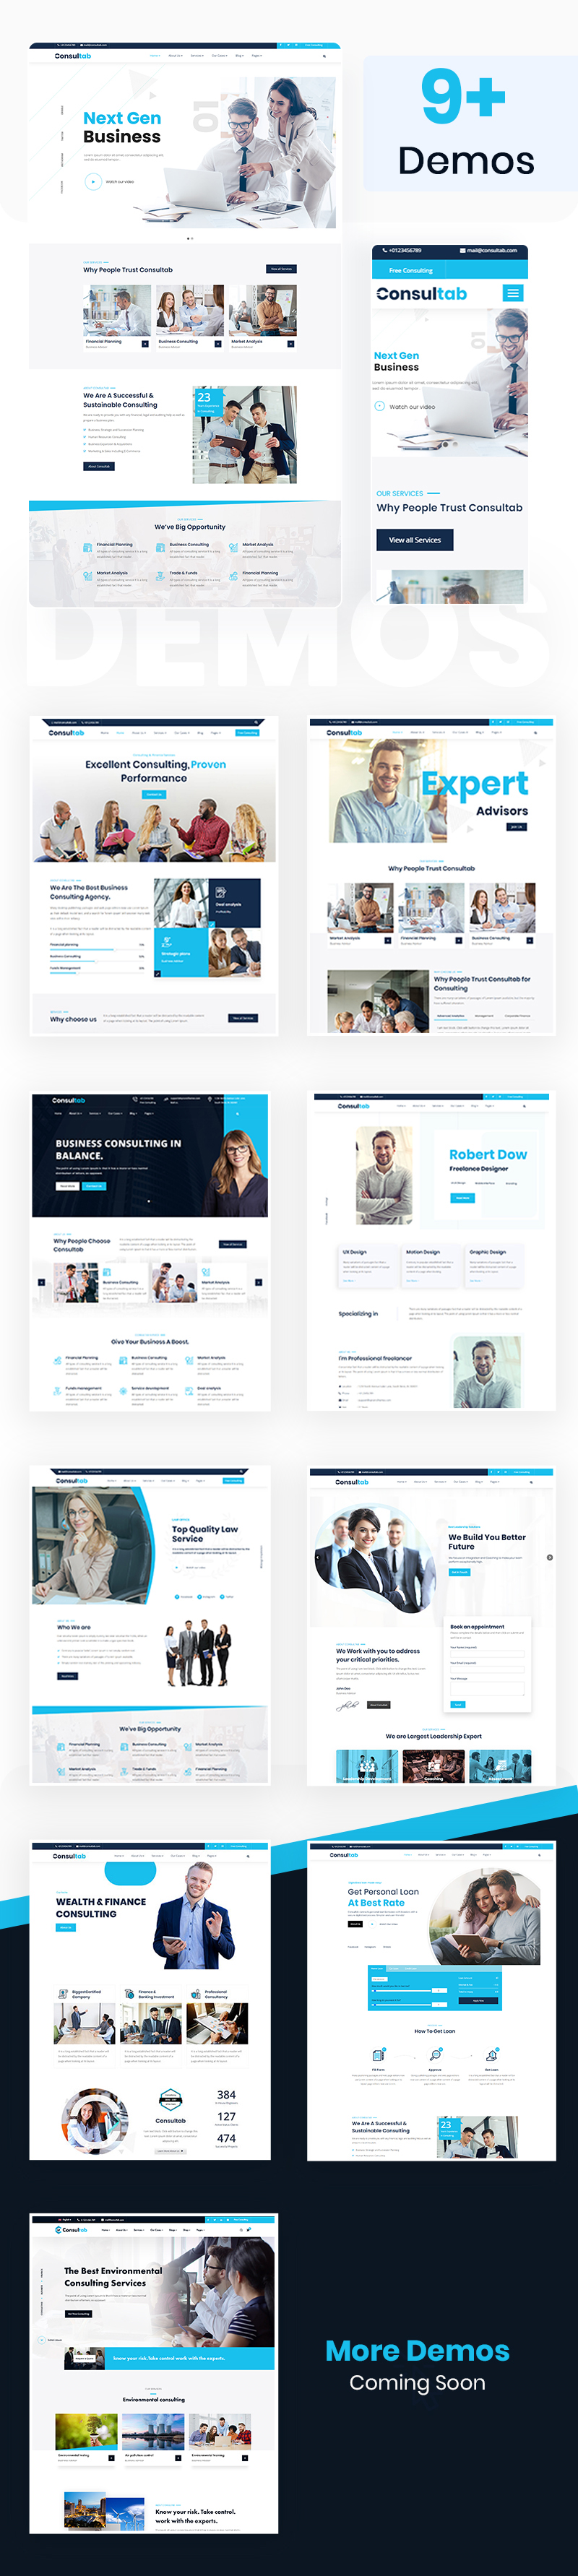 Consultab - Consulting Business & Finance WordPress Theme - 6 consulting business and finance wordpress theme Consultab n21